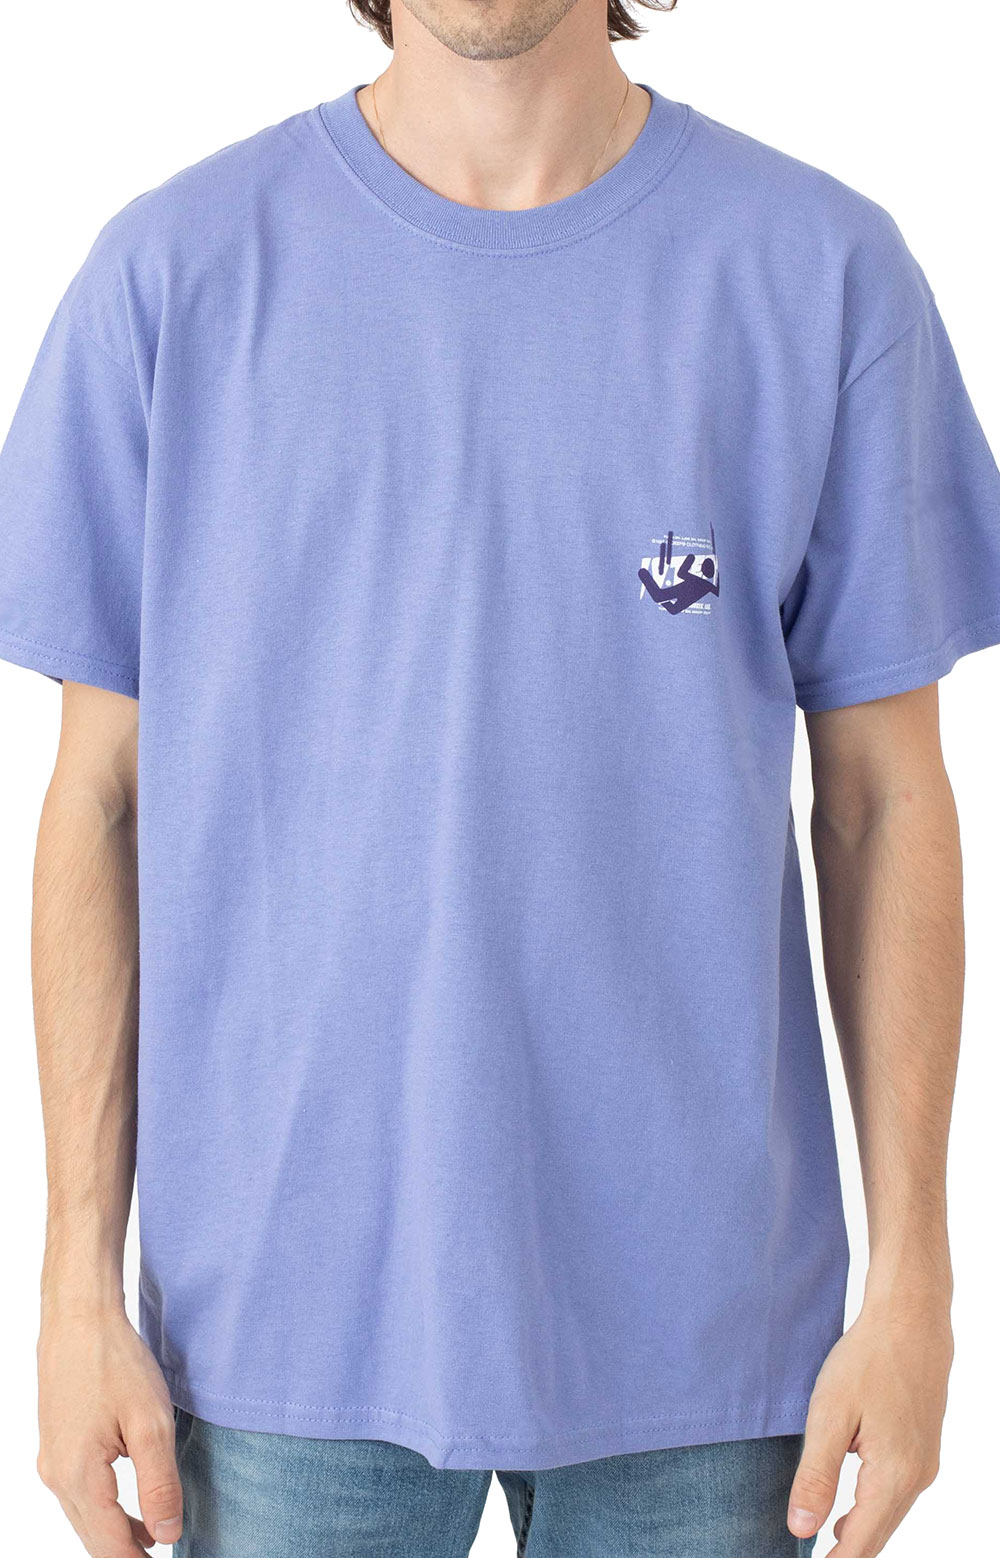 Log In Drop Out T-Shirt - Purple  2